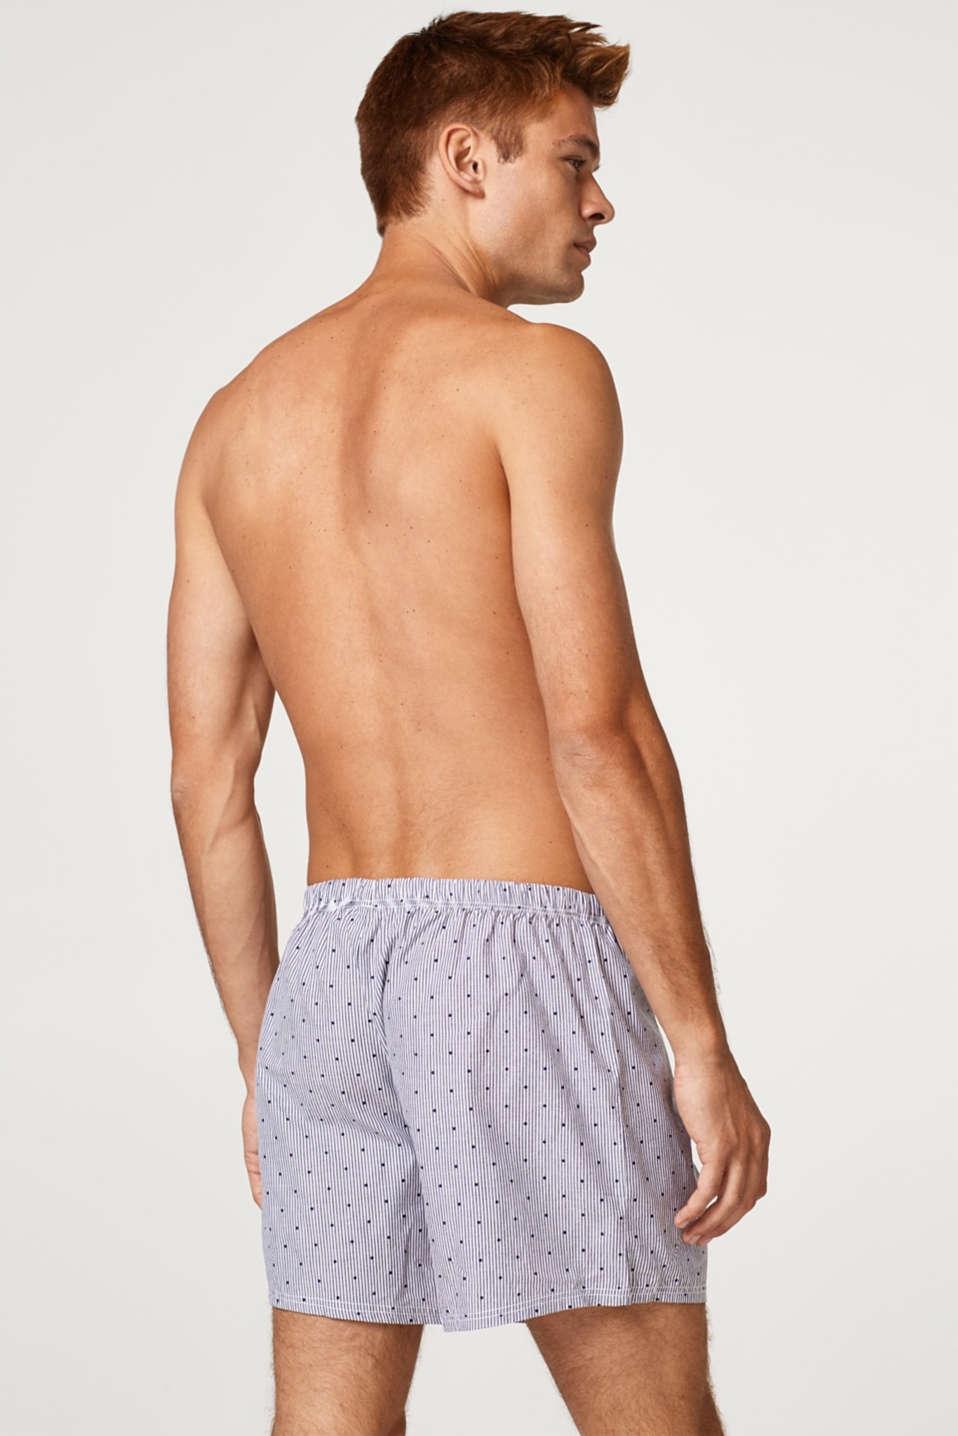 Shorts in a double pack, 100% cotton